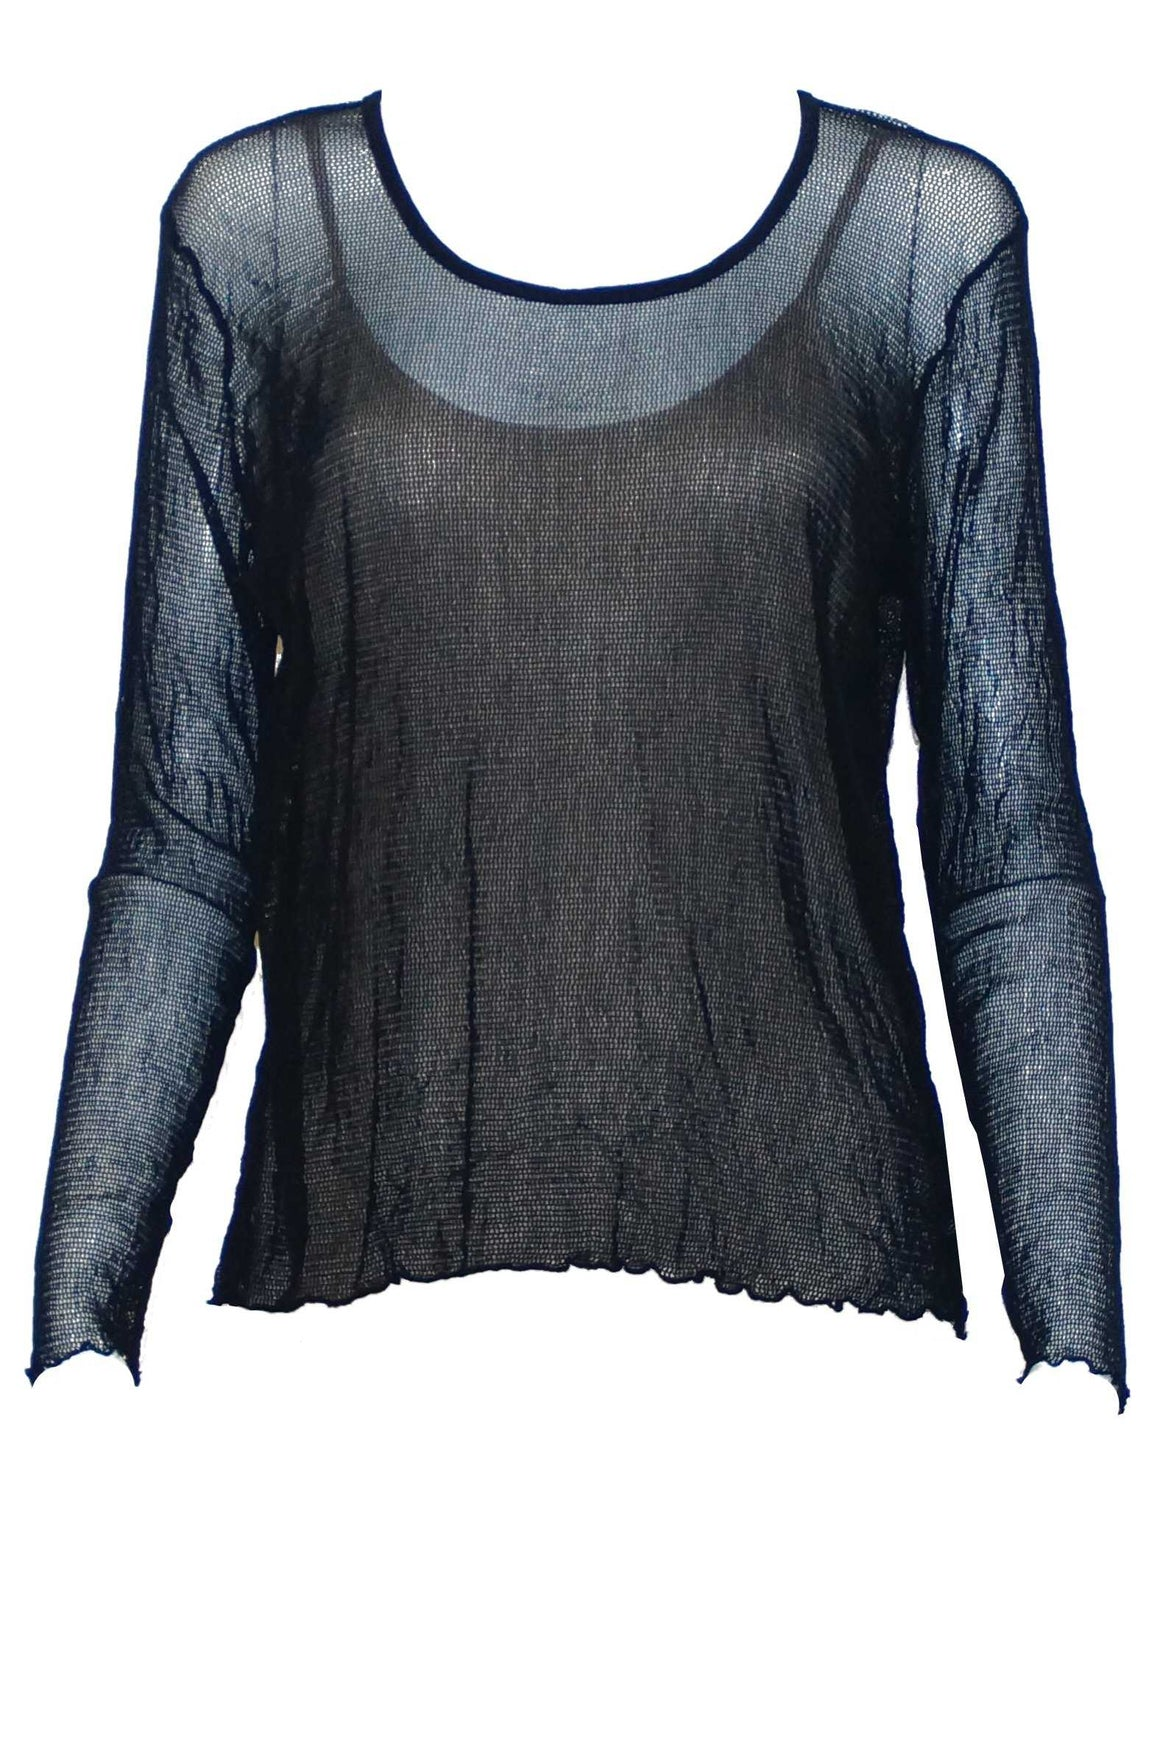 Basic Open Mesh top Long Sleeve Charcoal